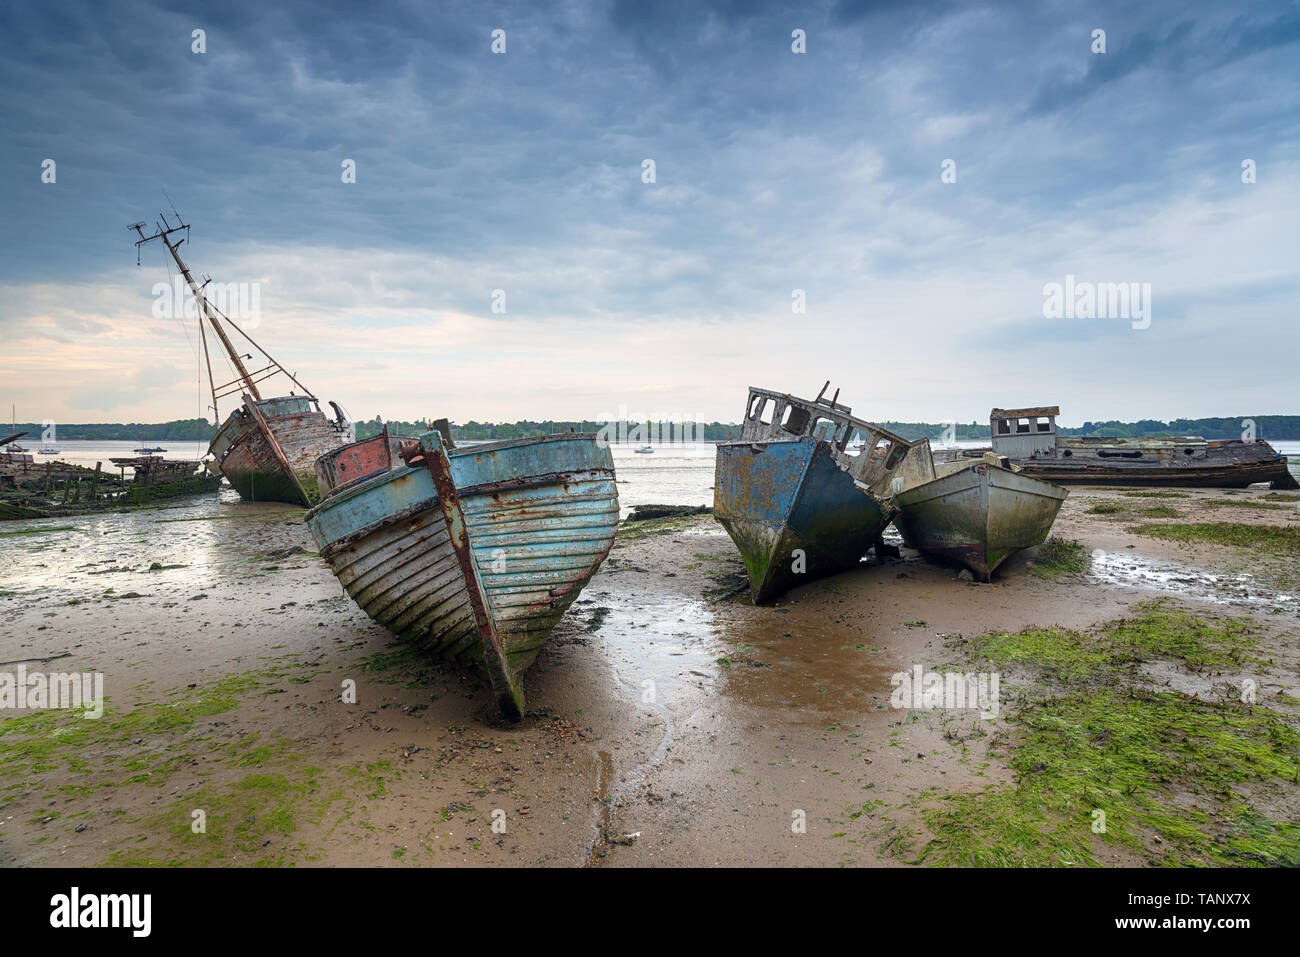 Abandoned fishing boats under a brooding sky at Pin Mill on the River Orwell near Ipswich on the Suffolk coast Stock Photo